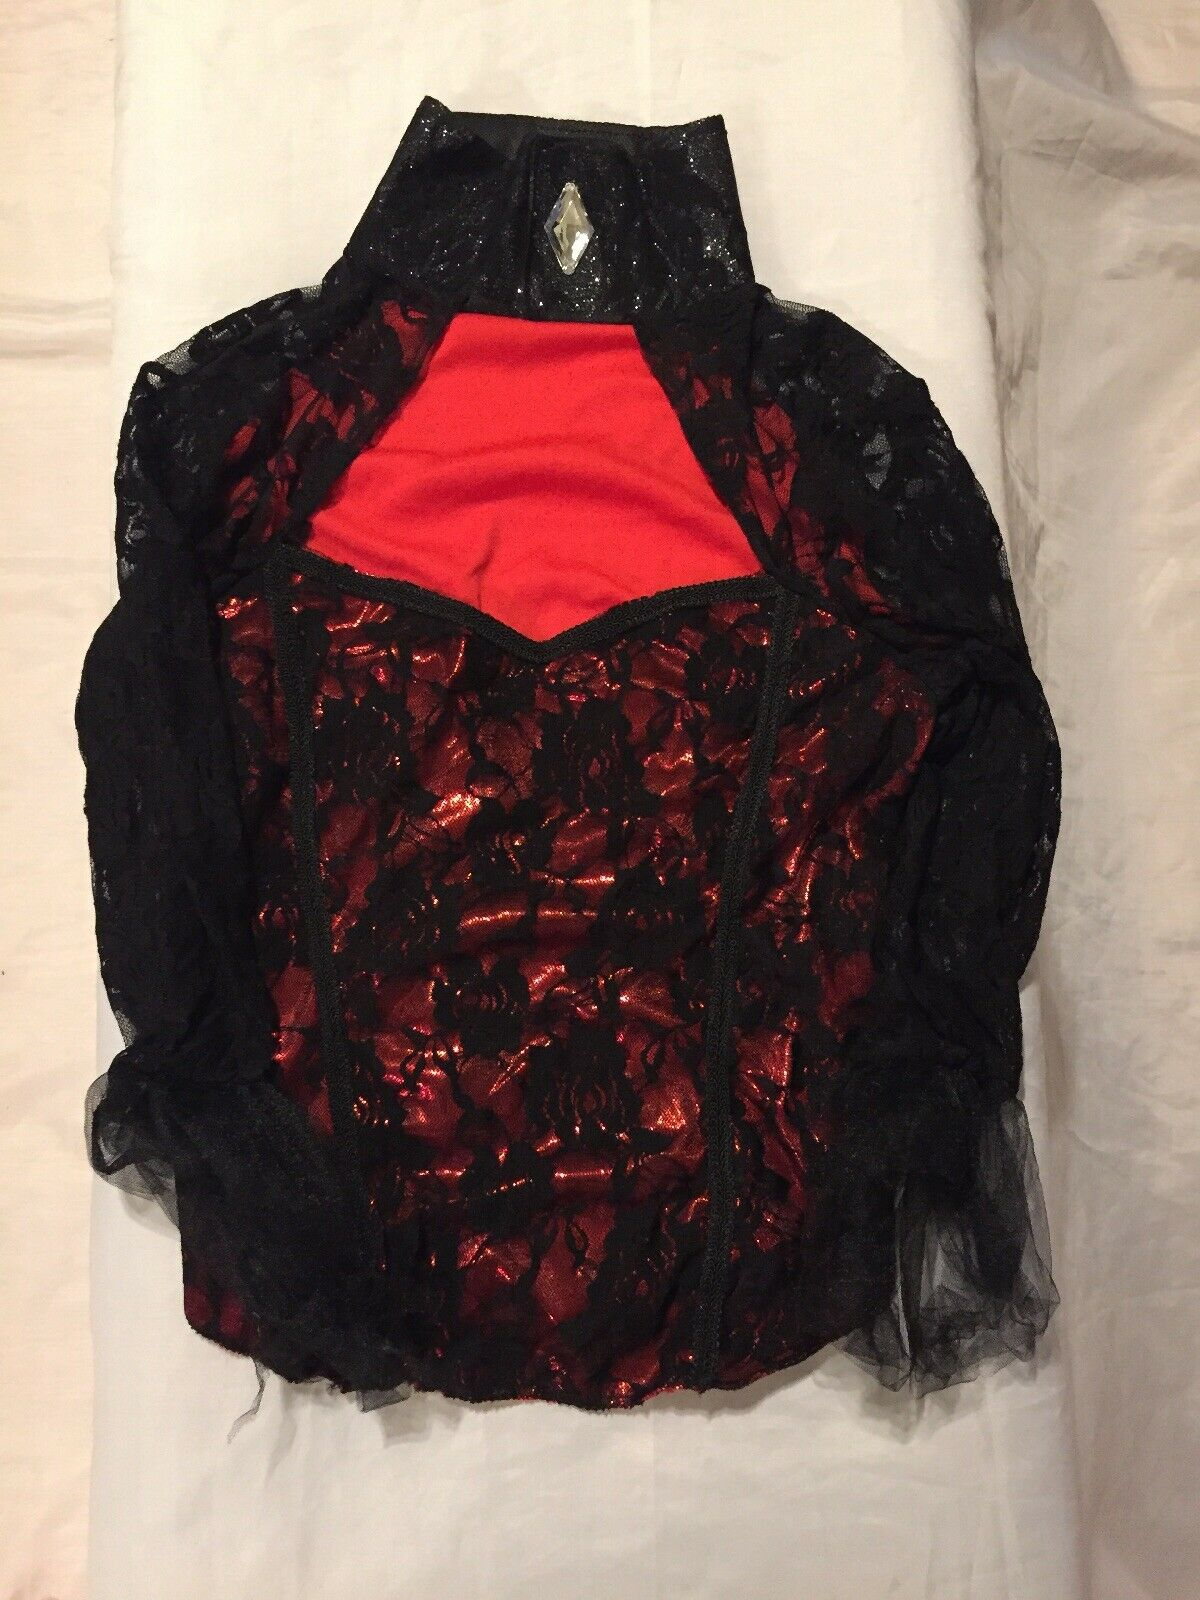 NWOT Women's Black & Red Sexy Lace Exotic Dance Costume Top Size M